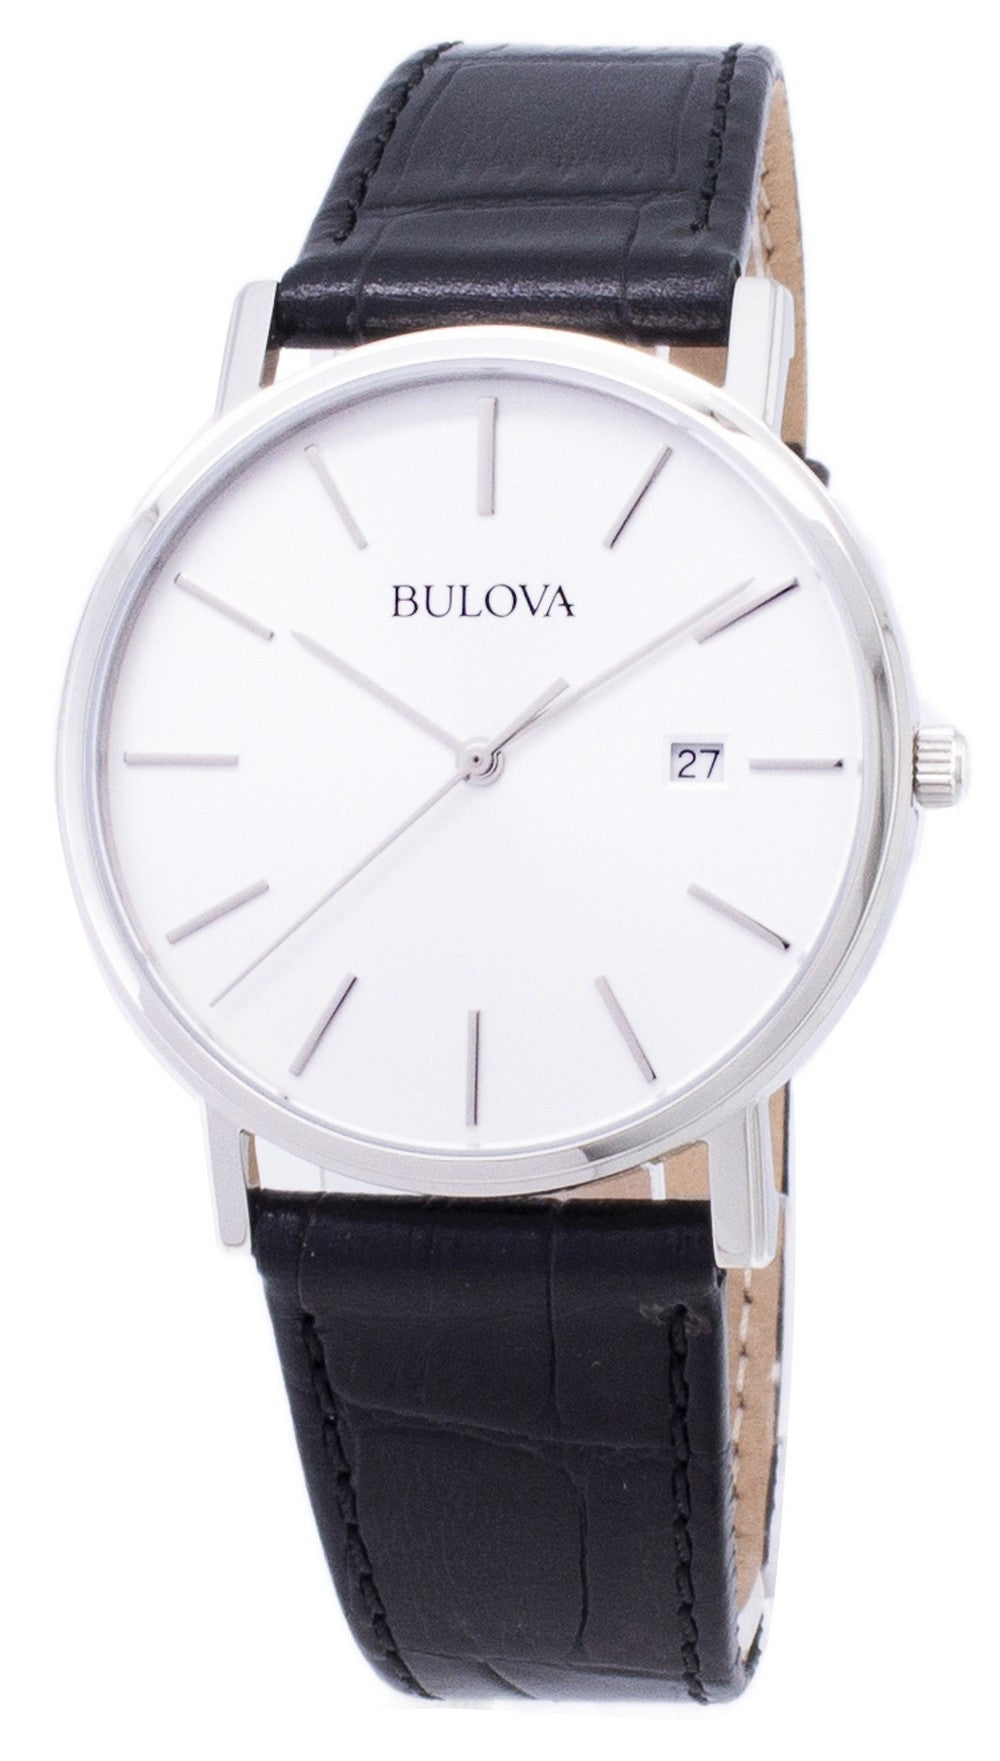 Bulova Black Leather 96B104 Men's Watch